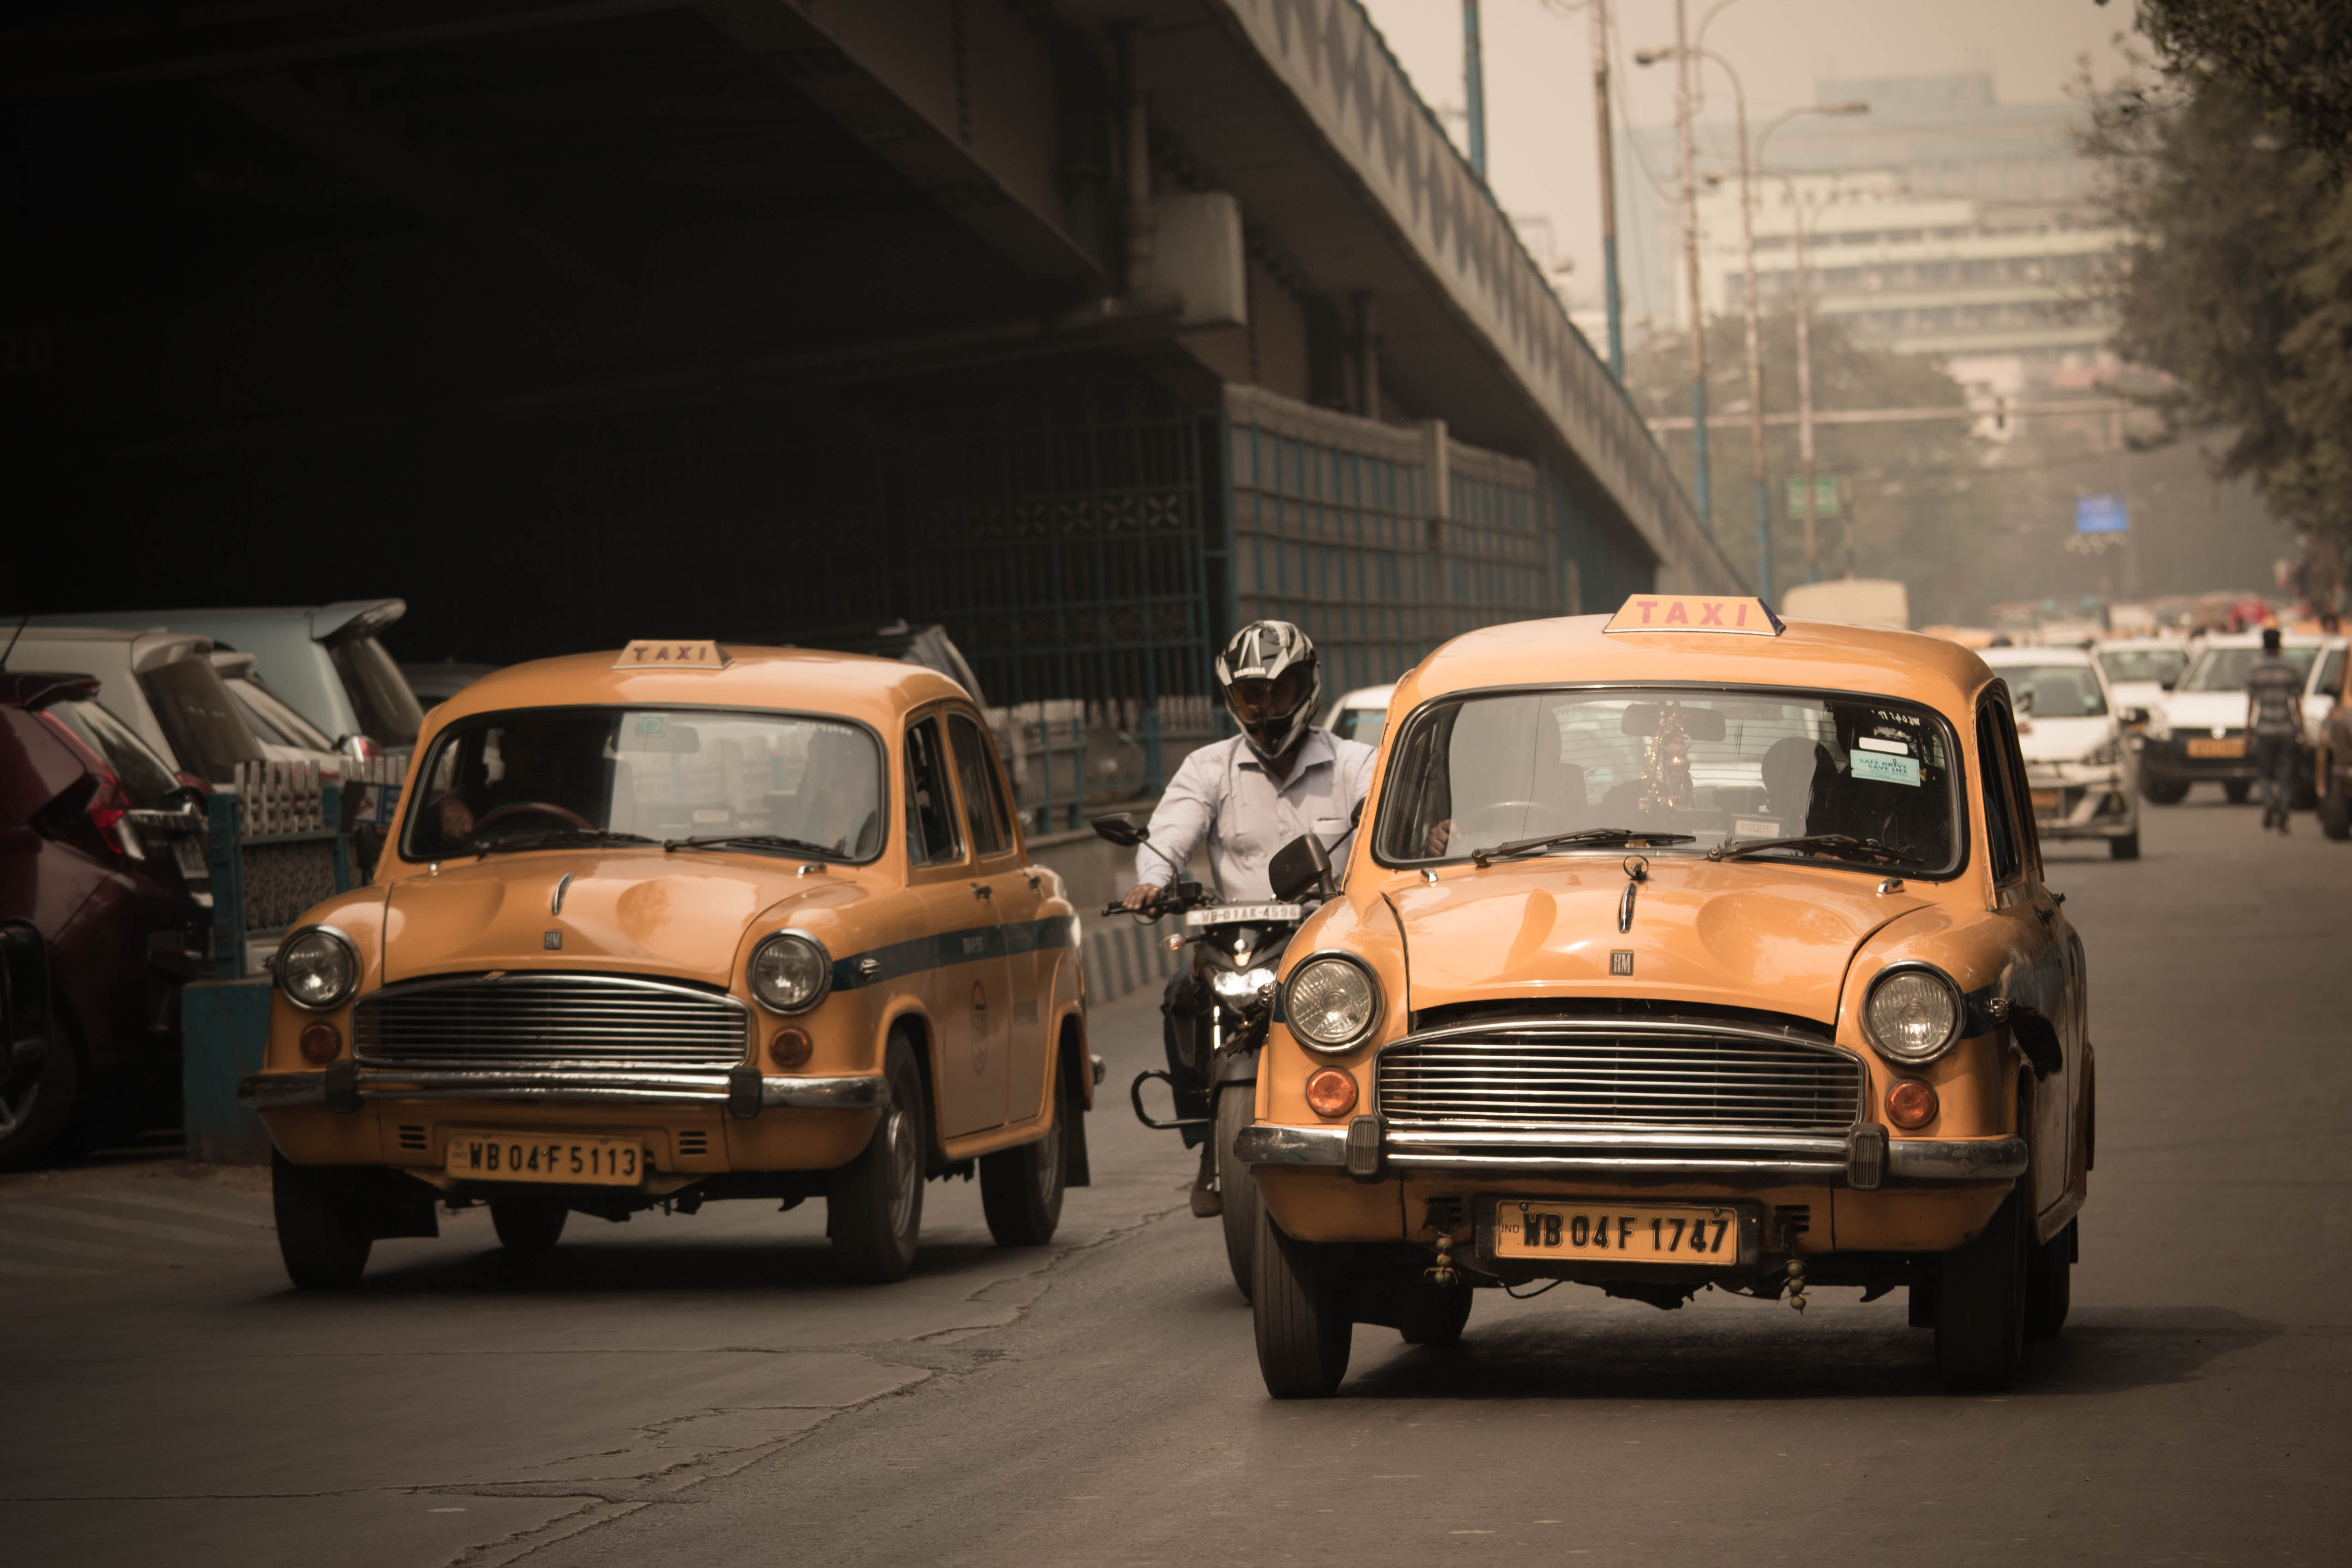 person riding motorcycle in between of two yellow taxi vehicle